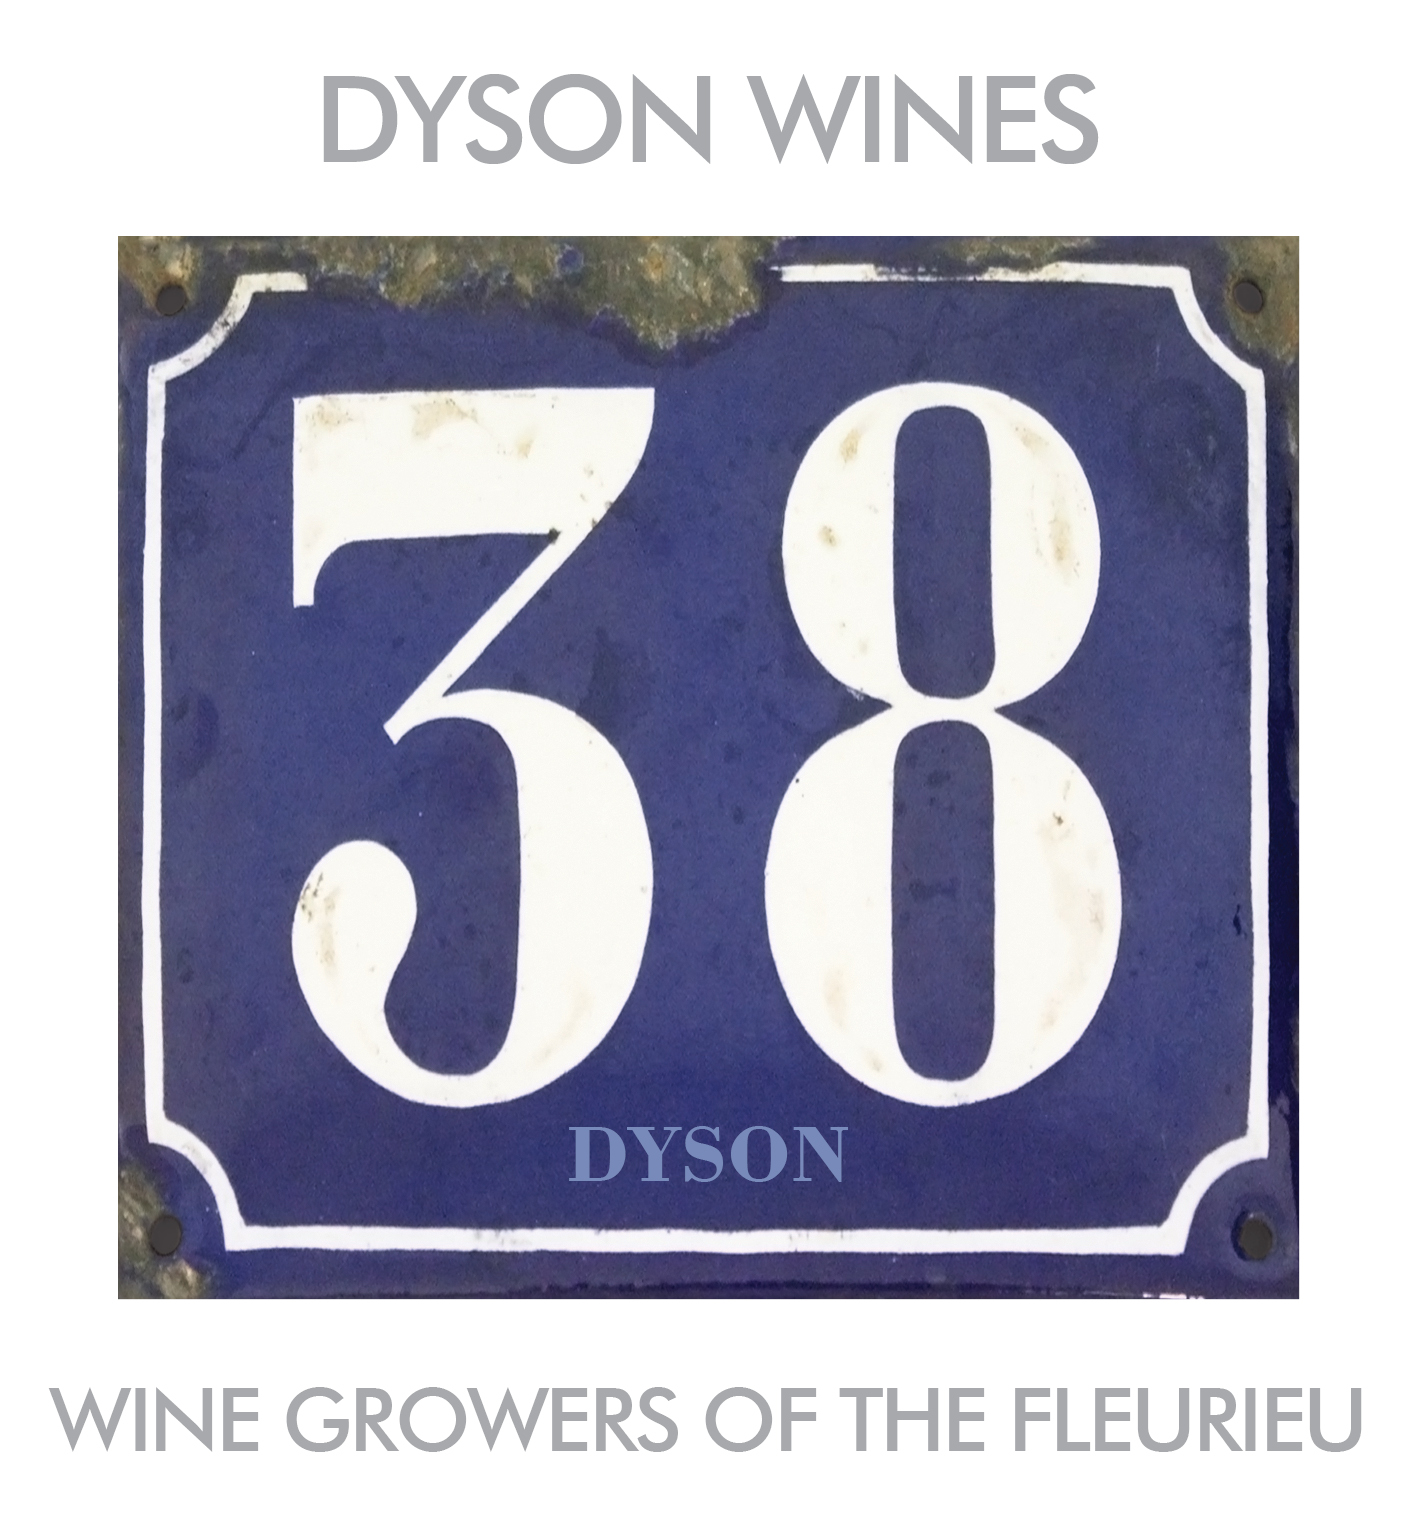 Dyson Wines - Broome Tourism